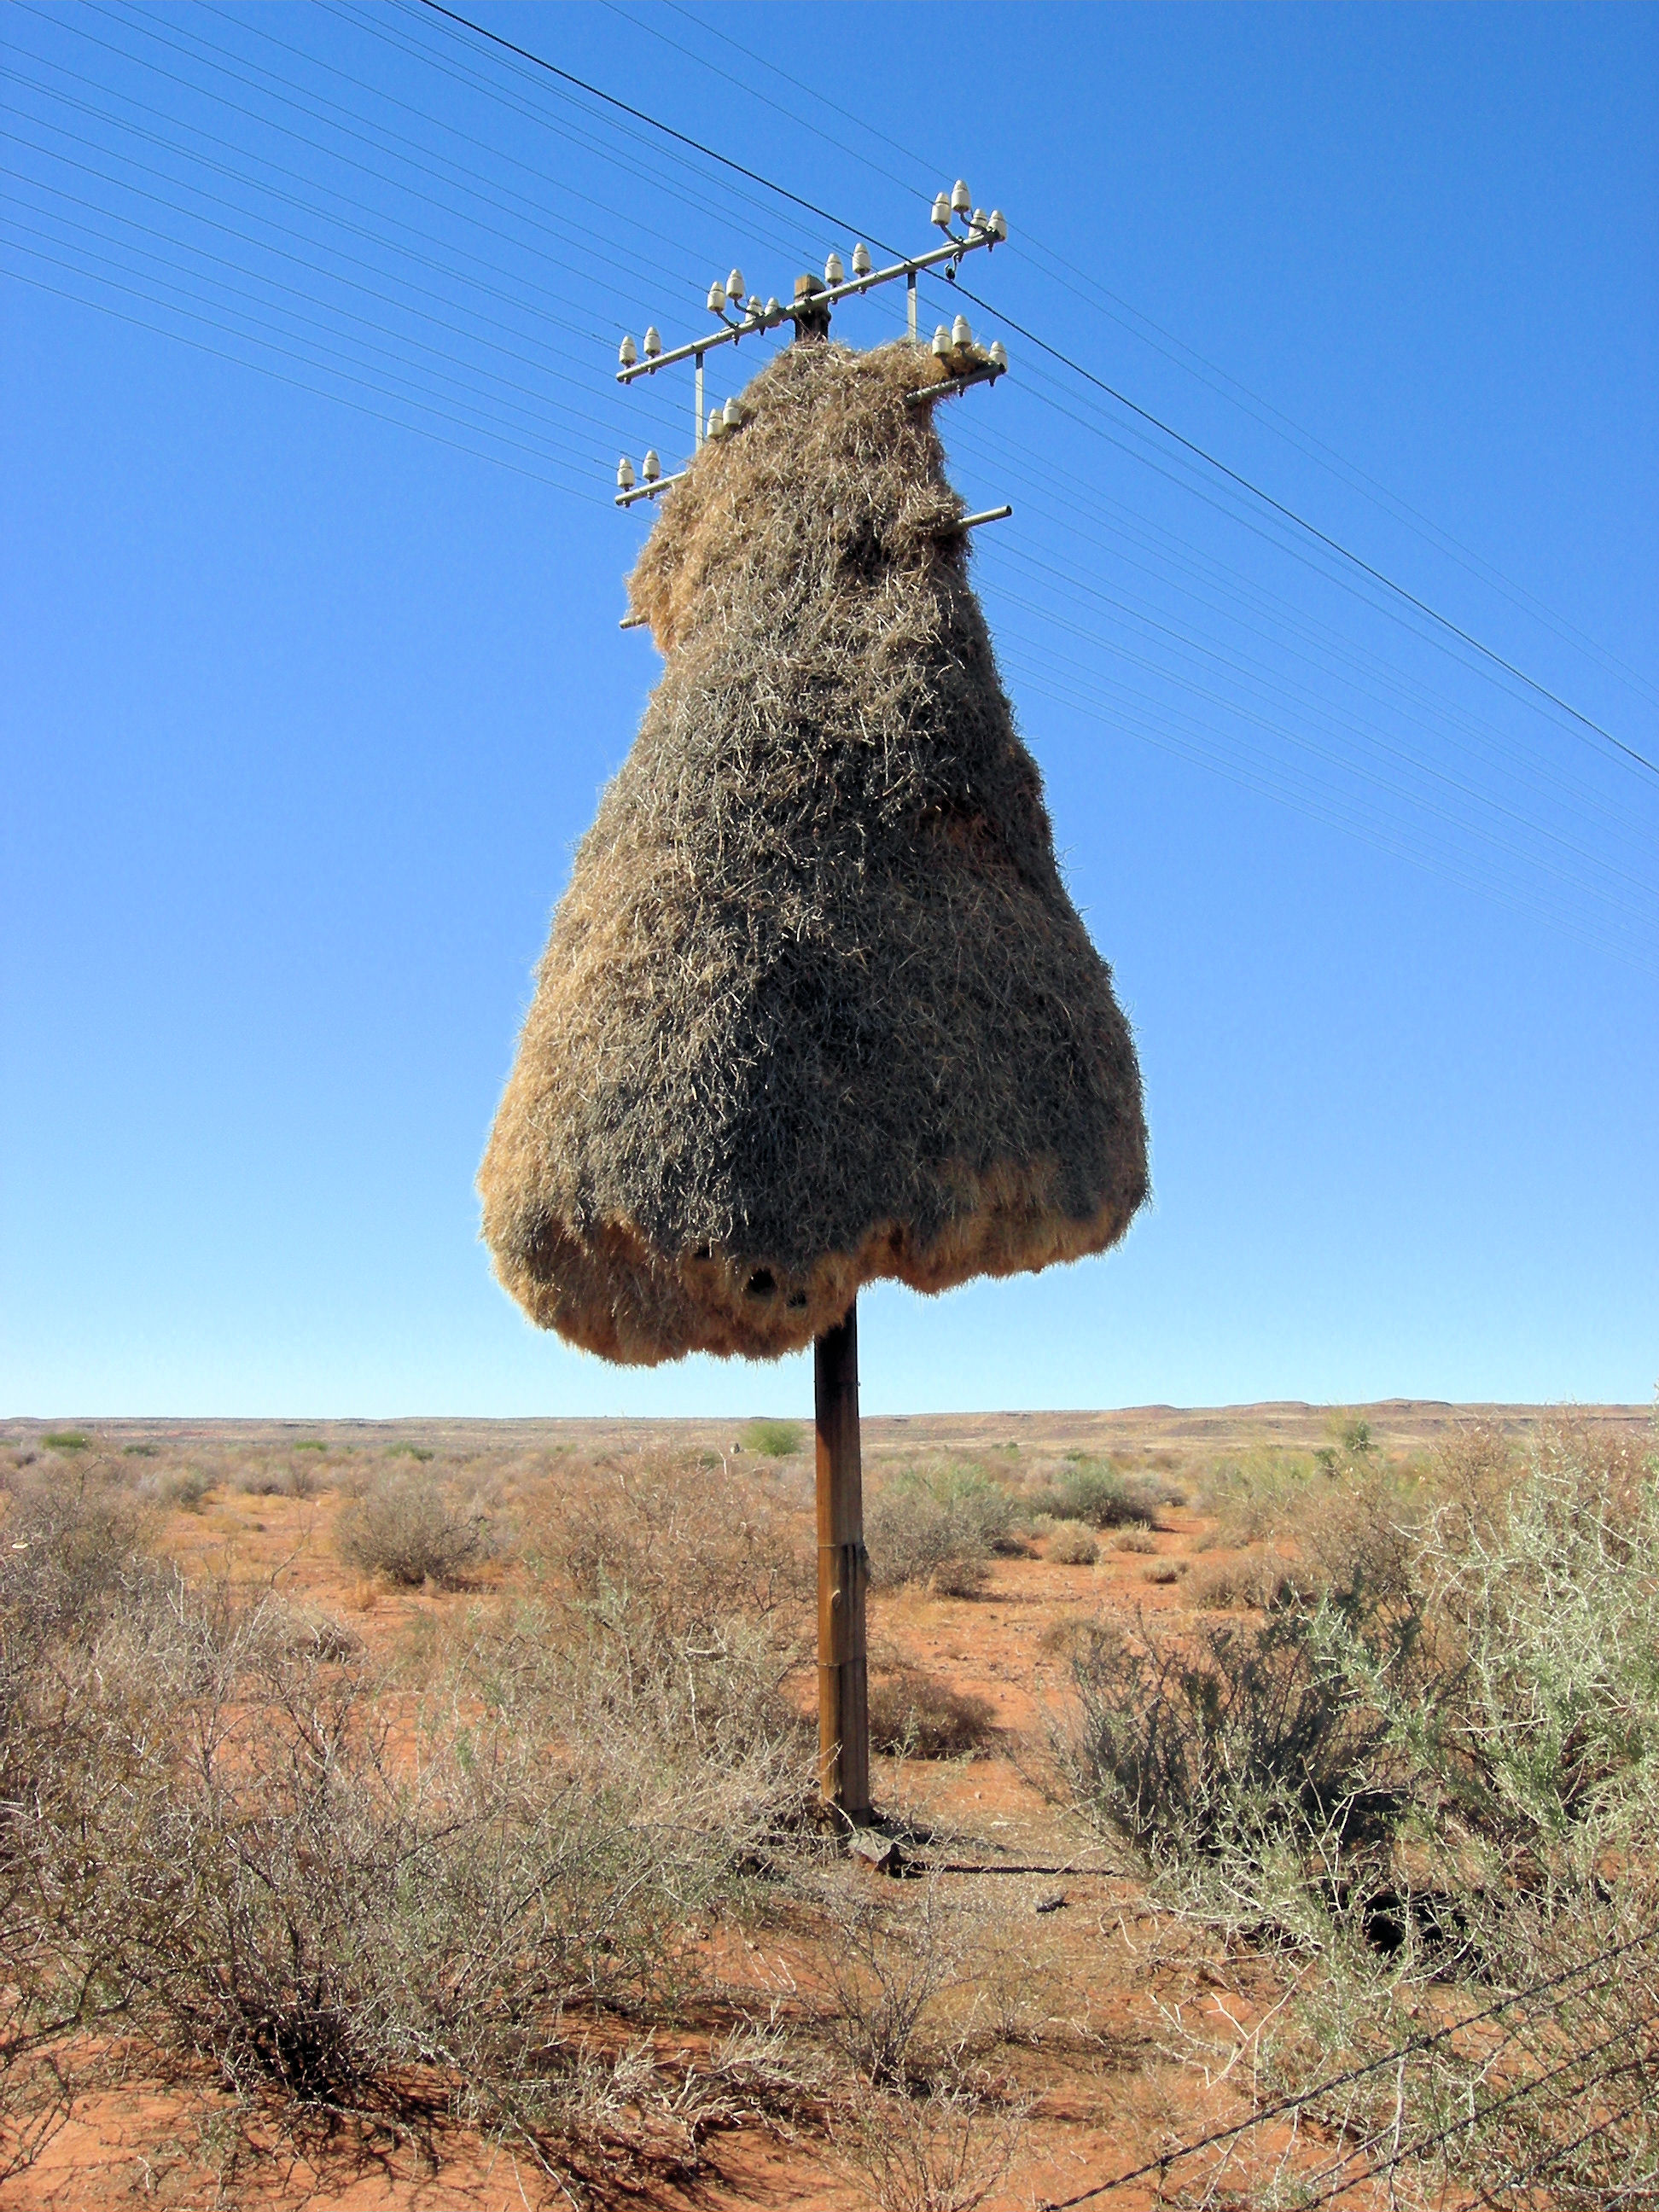 Weaver bird nest pictures - photo#18